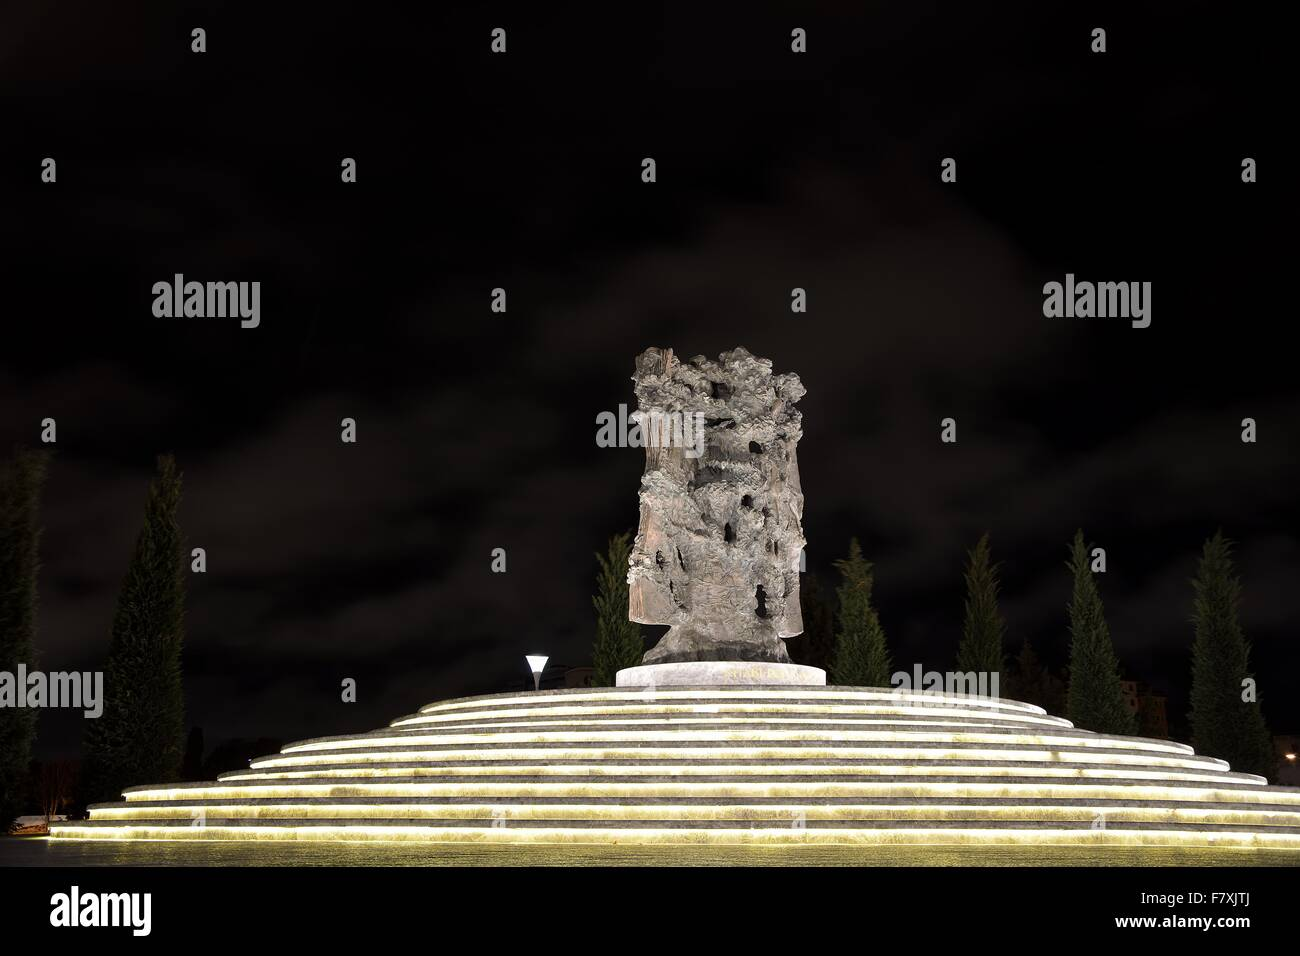 Sculpture at night in Dede Gorgud Park, Baku, capital of Azerbaijan - Stock Image